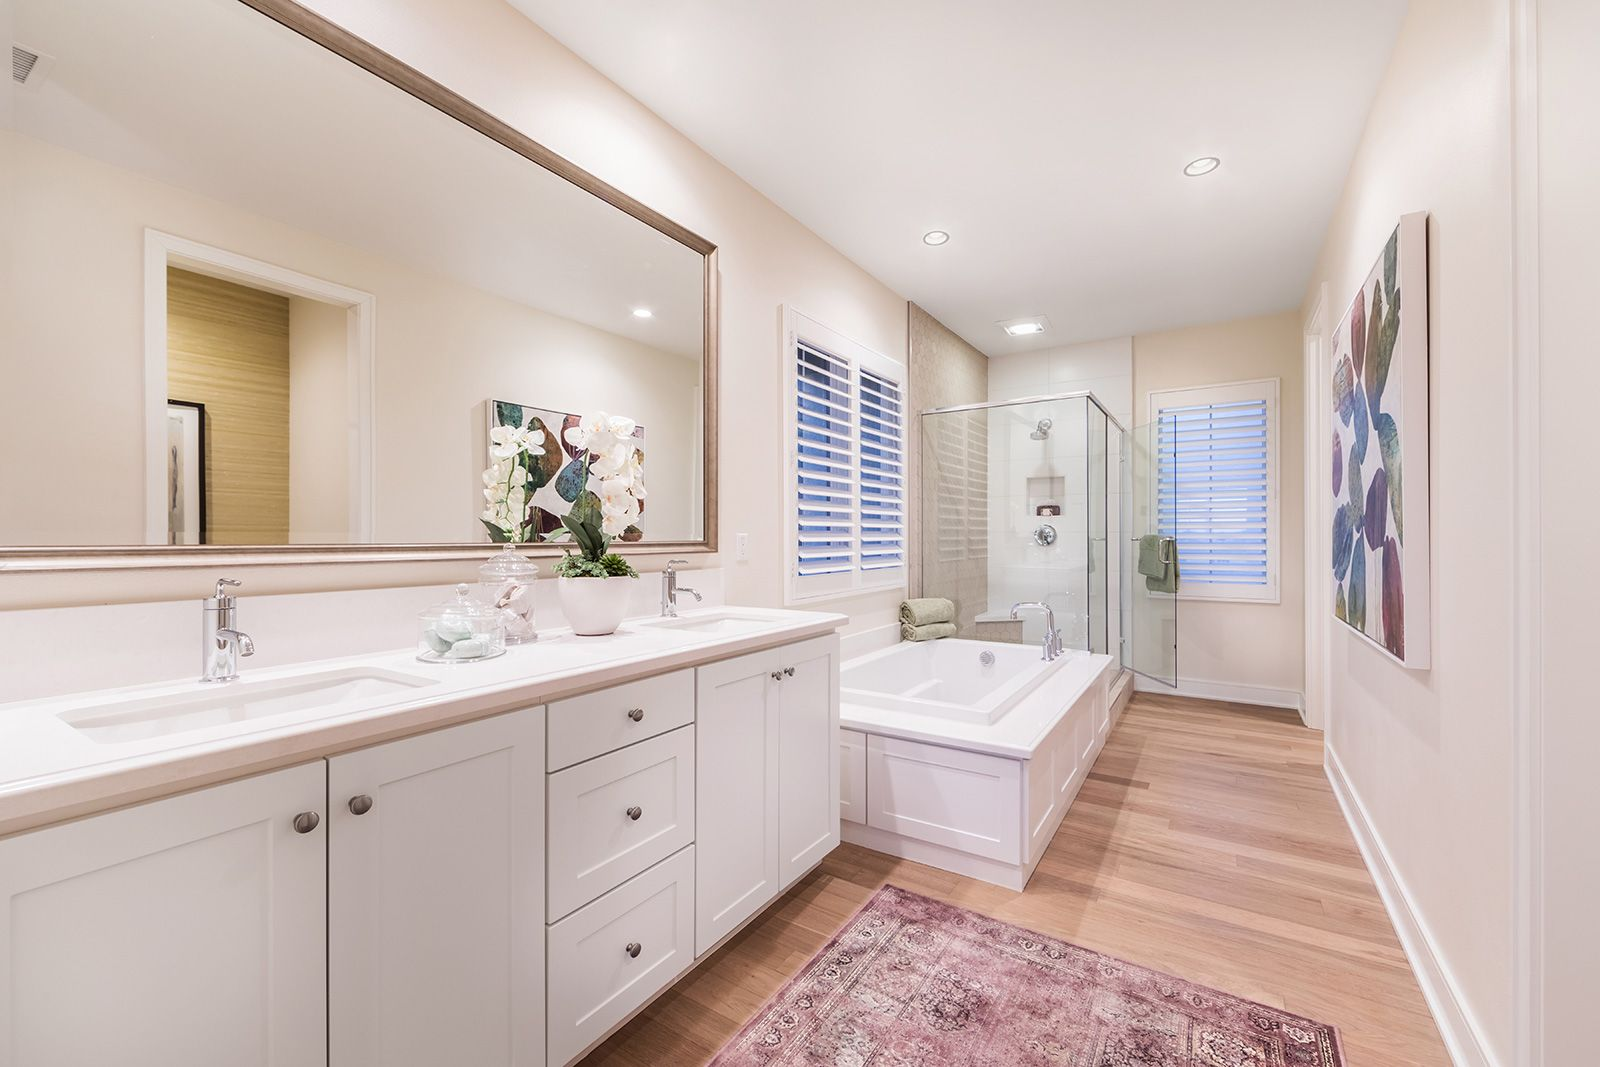 Bathroom featured in the Residence 4 By Irvine Pacific in Orange County, CA